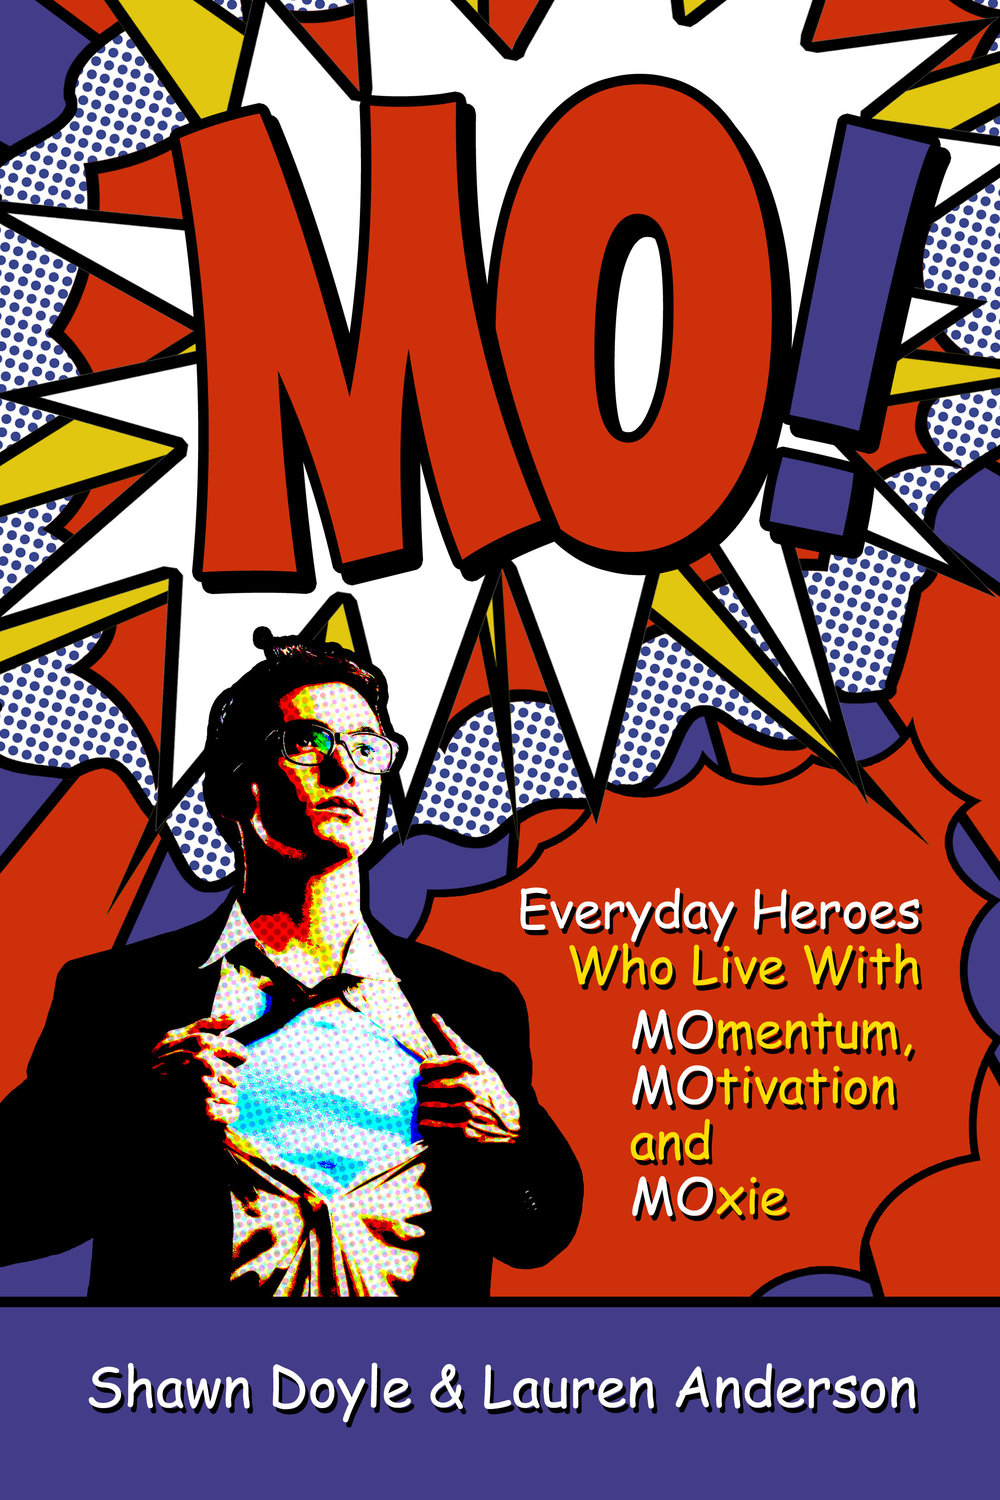 MO! - By shawn doyle csp & lauren anderson